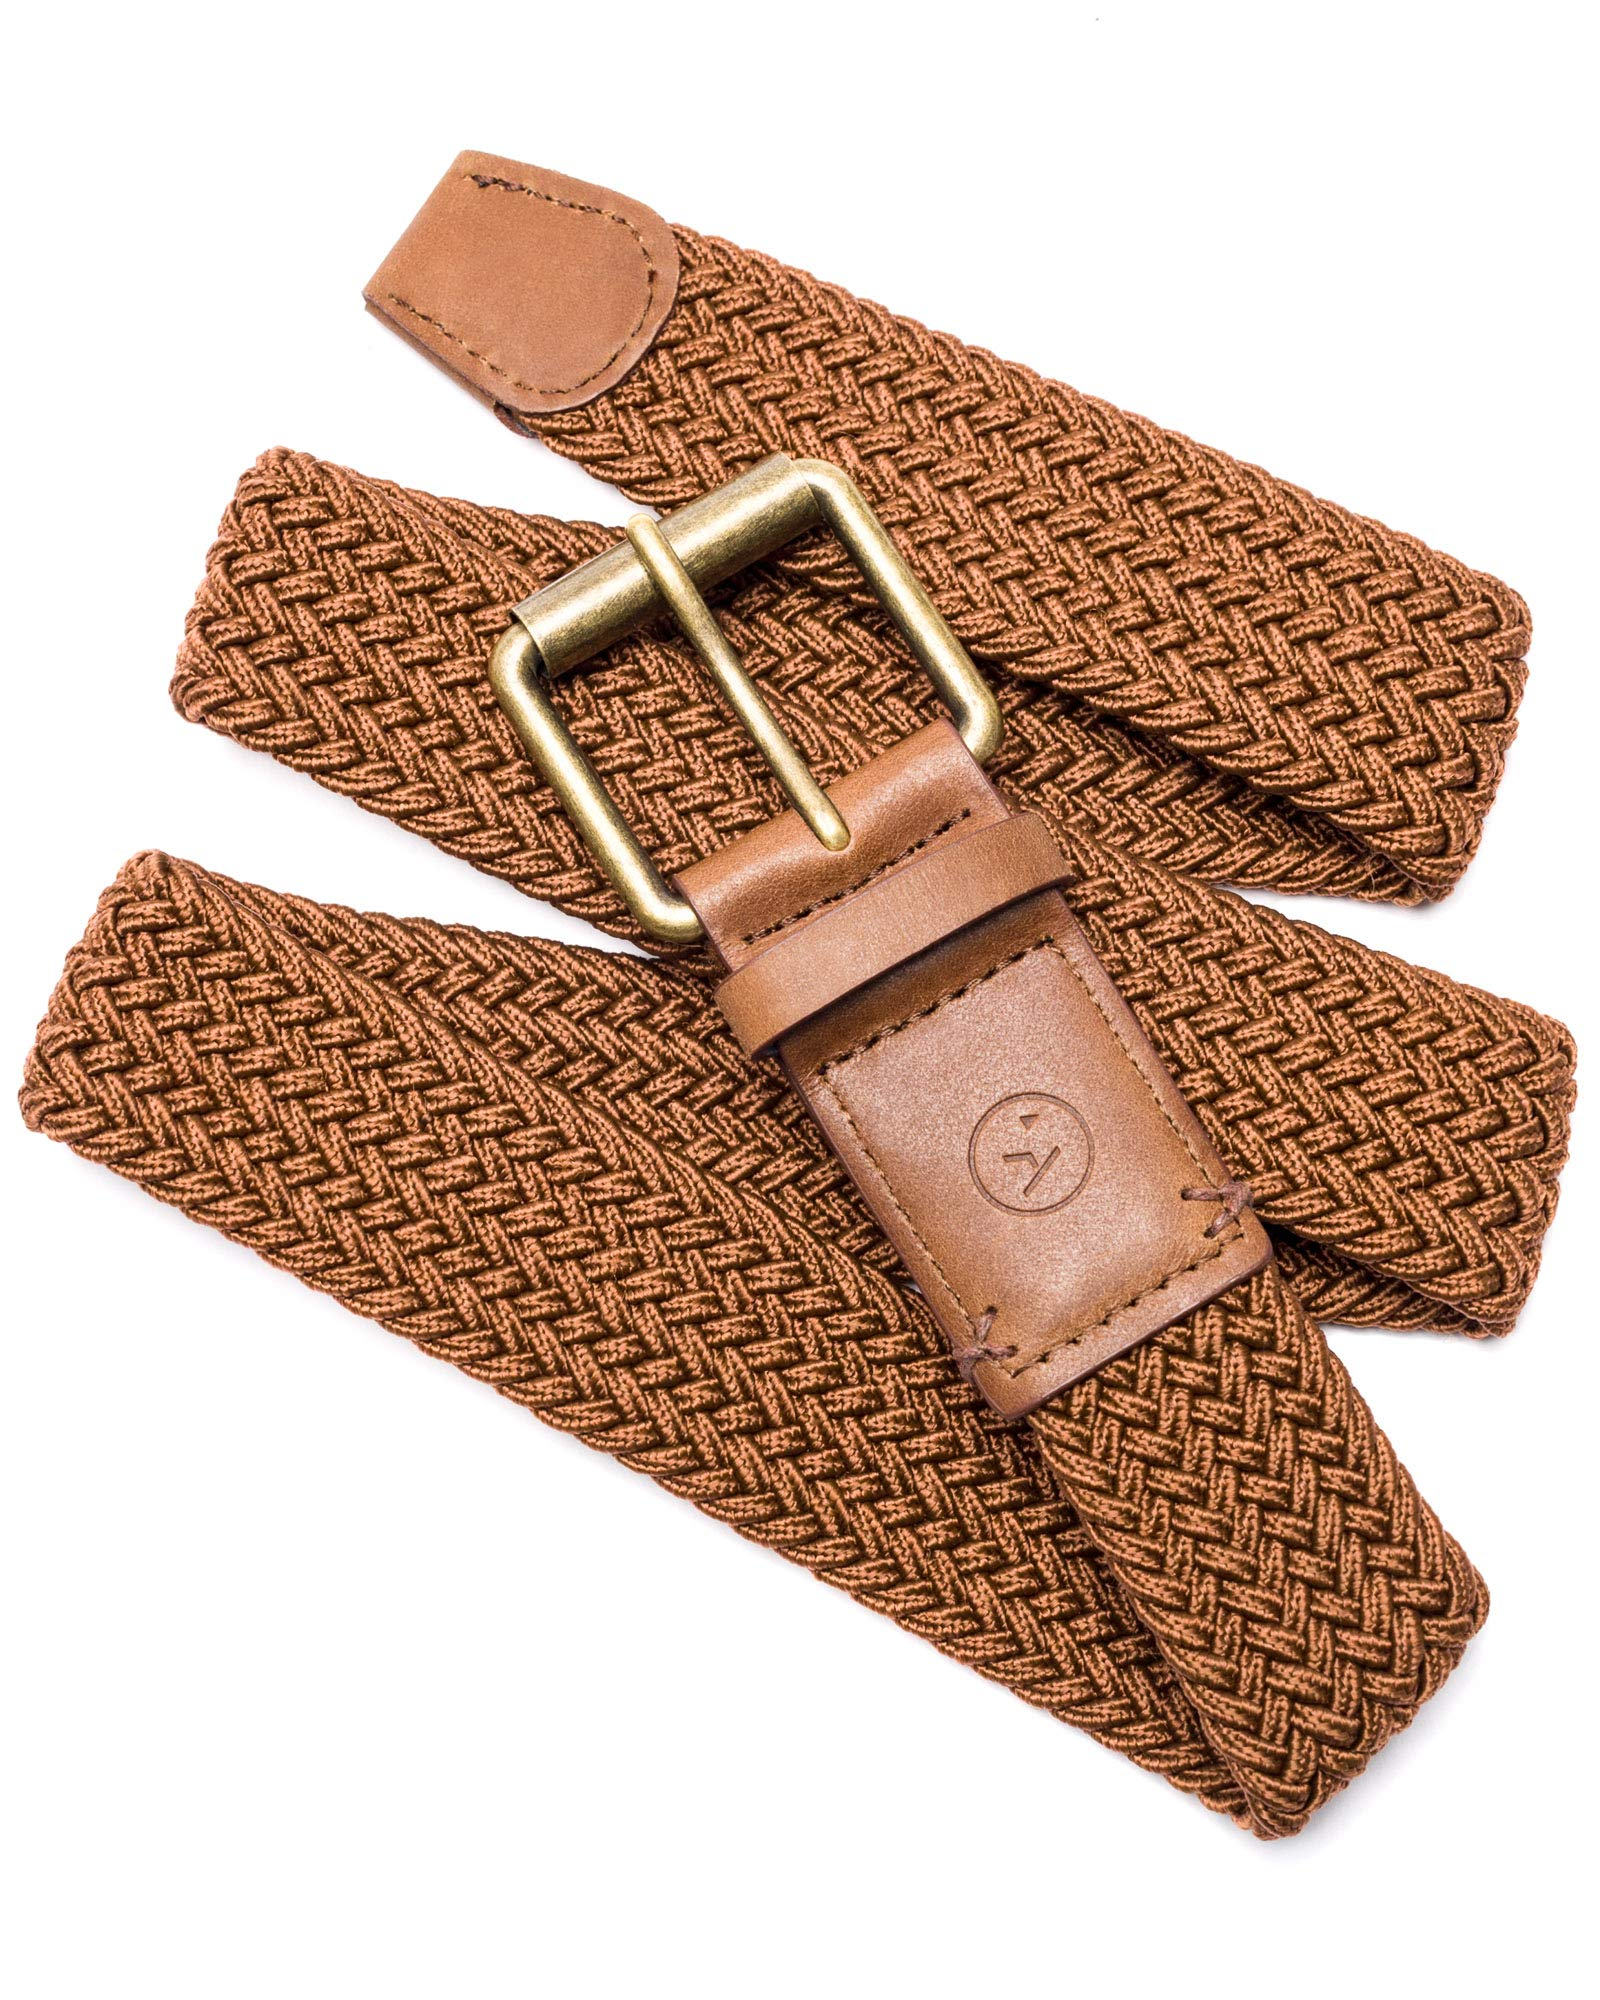 Arcade Belt Mens Smartweave Hudson Belts: Braided Elastic Webbing For A Custom Fit, Brown/Caramel, L